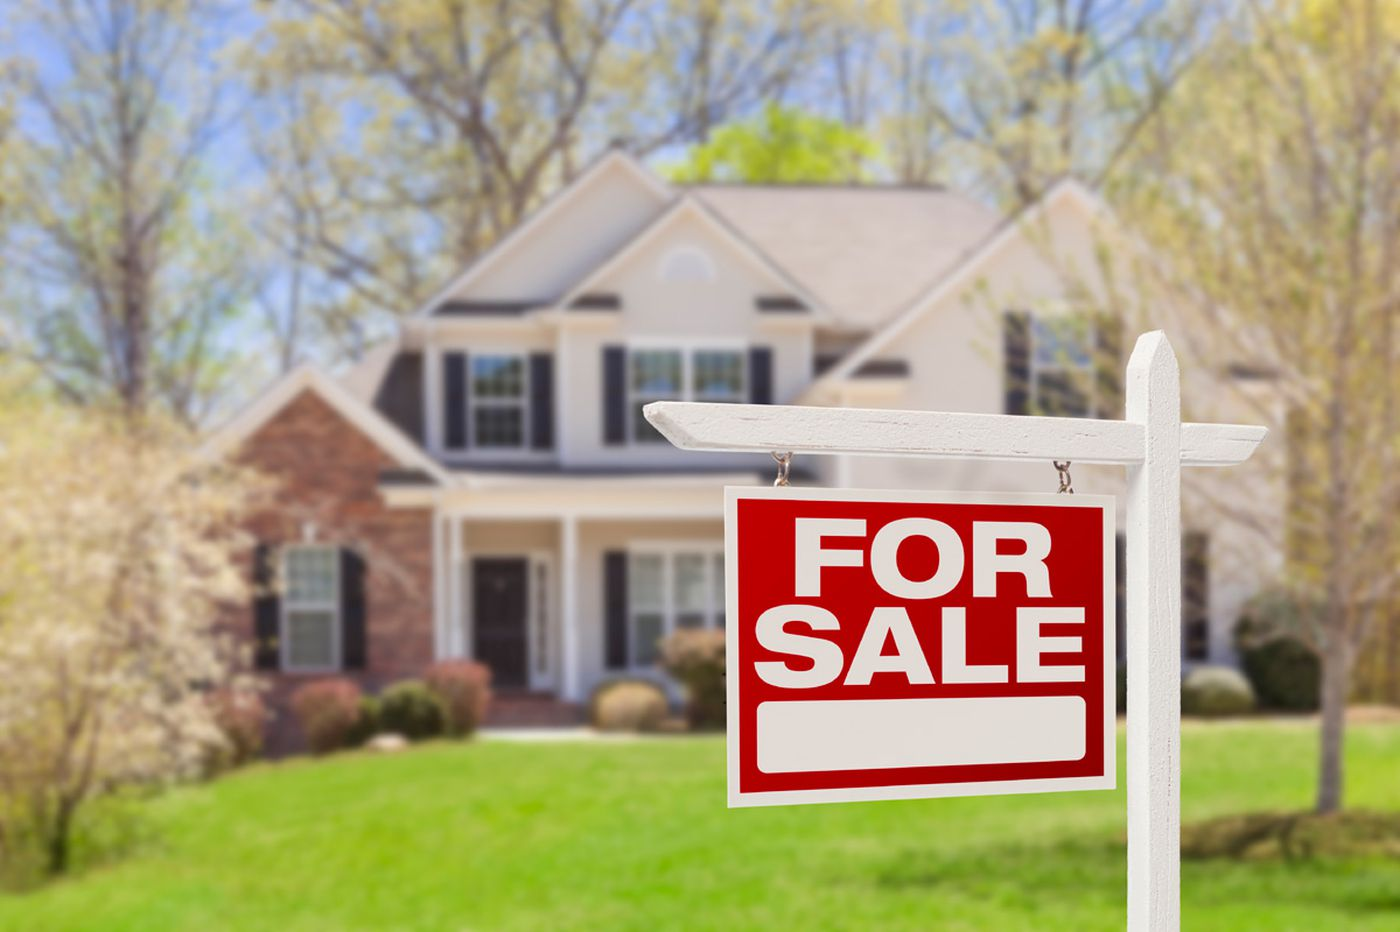 How do you persuade a homeowner to sell?